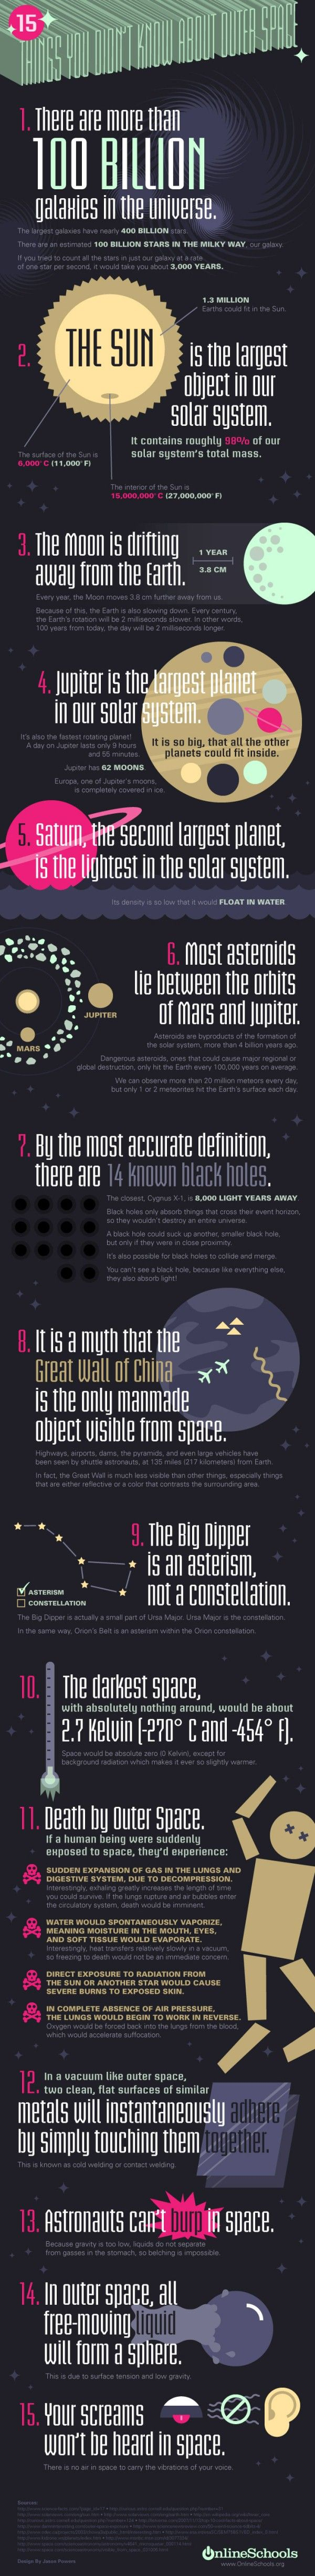 Fascinating: Solar System, Space Facts, Final Frontier, Spaces Facts, 15 Things, Fun Facts, Interesting Facts, Spaces Infographic, Outer Spaces